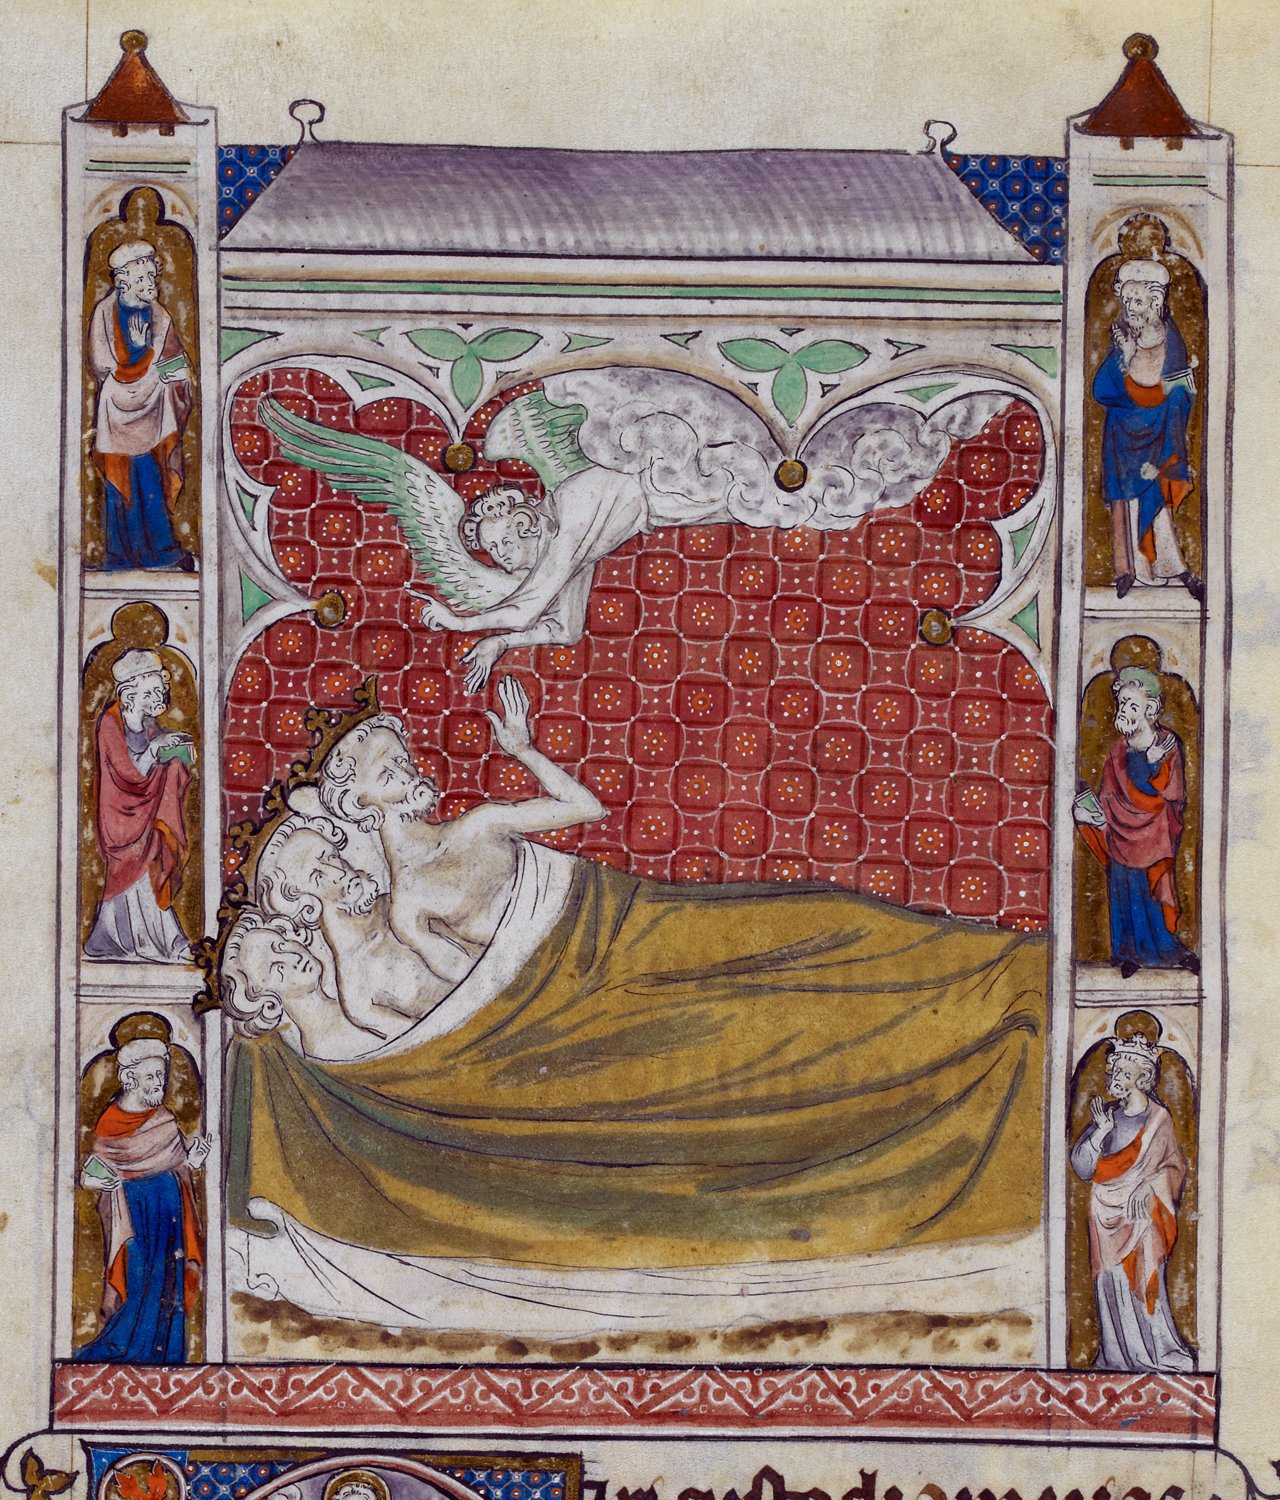 The three Magi share a bed, and are visited by an angel